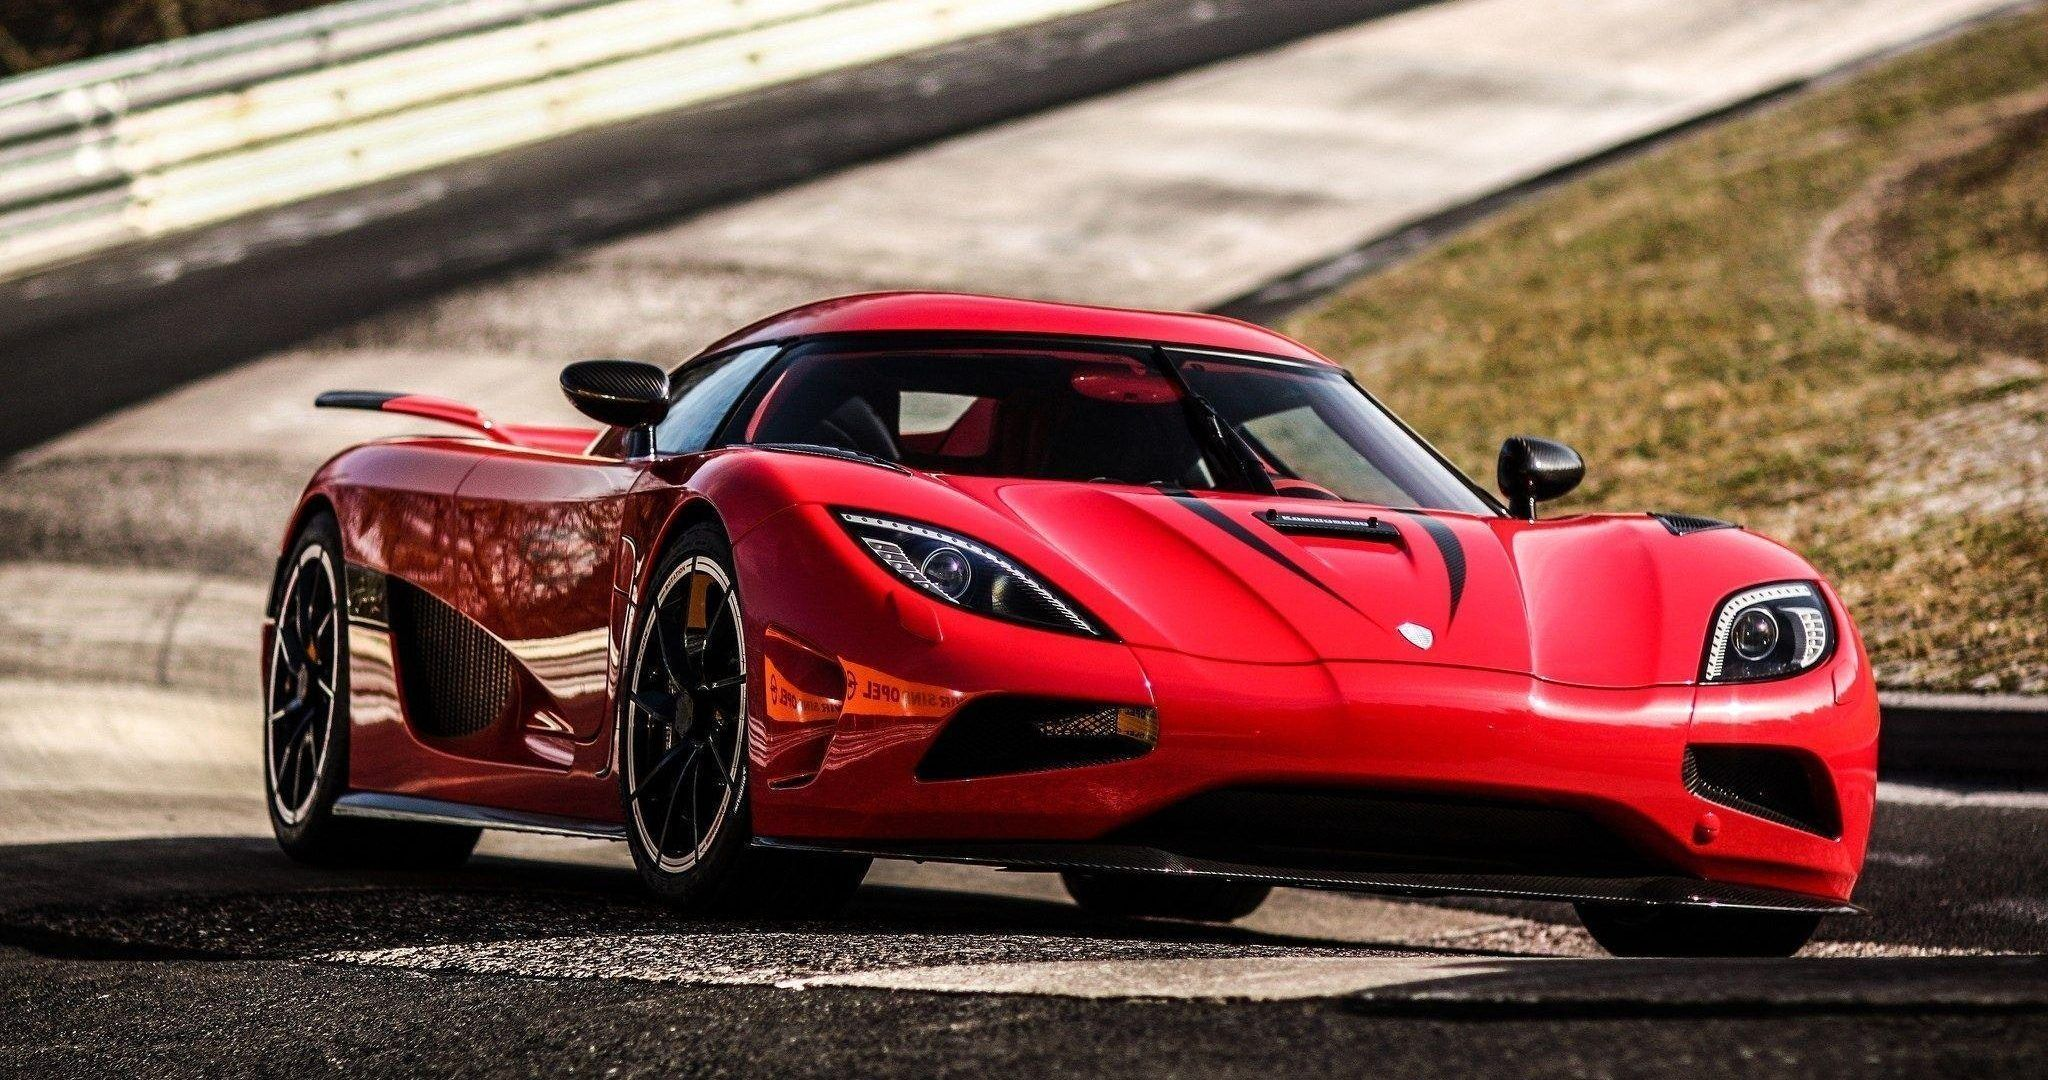 Ranking The Fastest V8-Powered Sports Cars